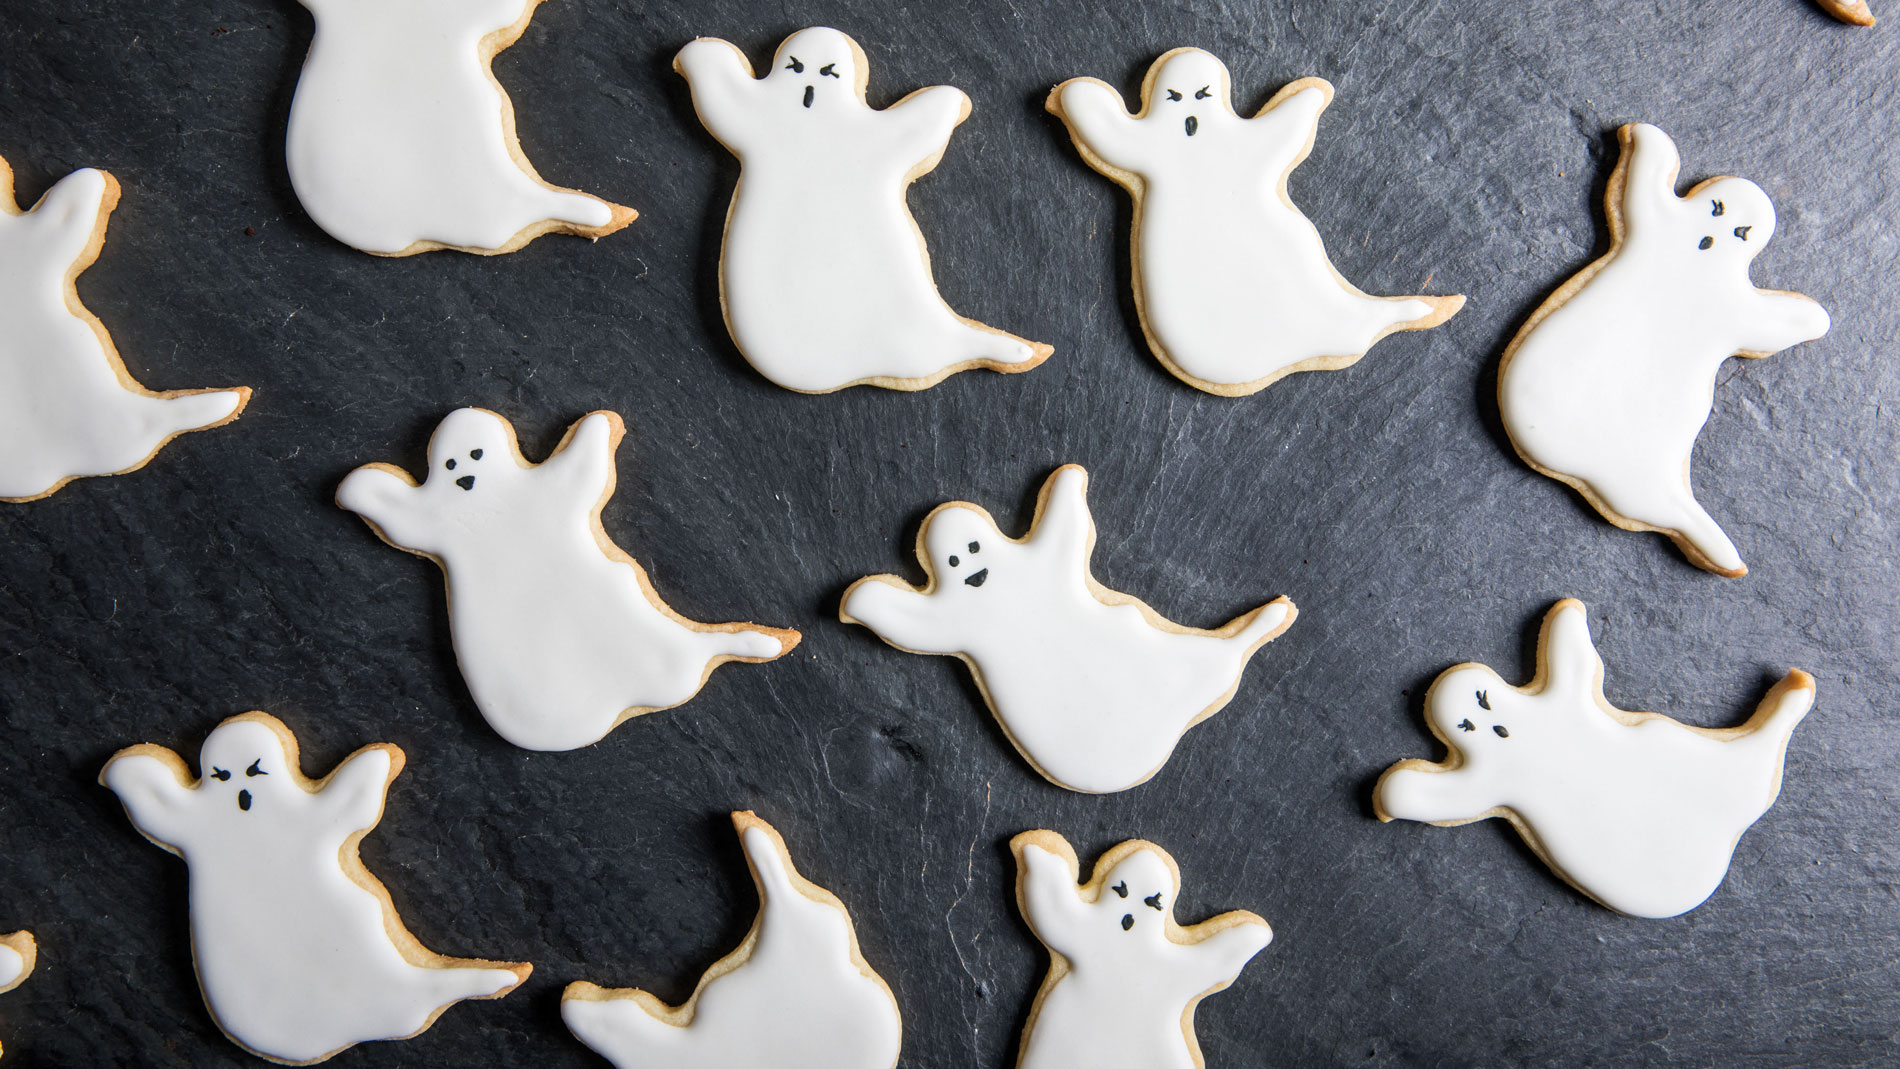 Halloween Sugar Cookie Recipes & Ideas